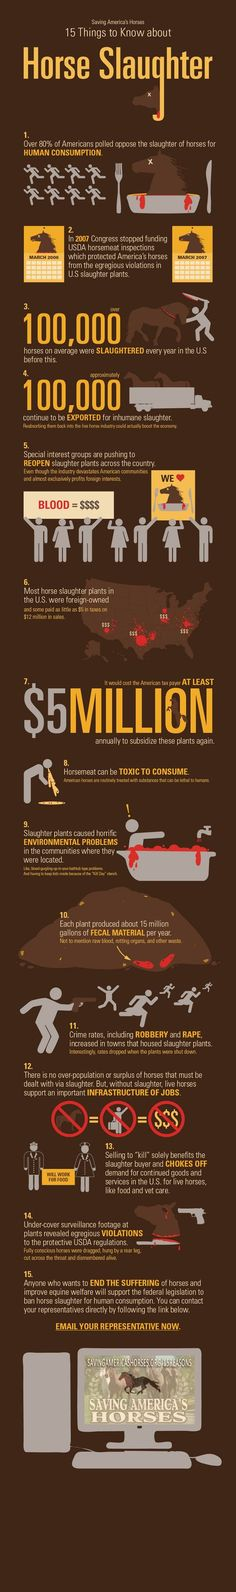 This is one of the most important and knowledgeable infographics I've ever read. Please take the time to read this and help END HORSE SLAUGHTERING FOREVER!